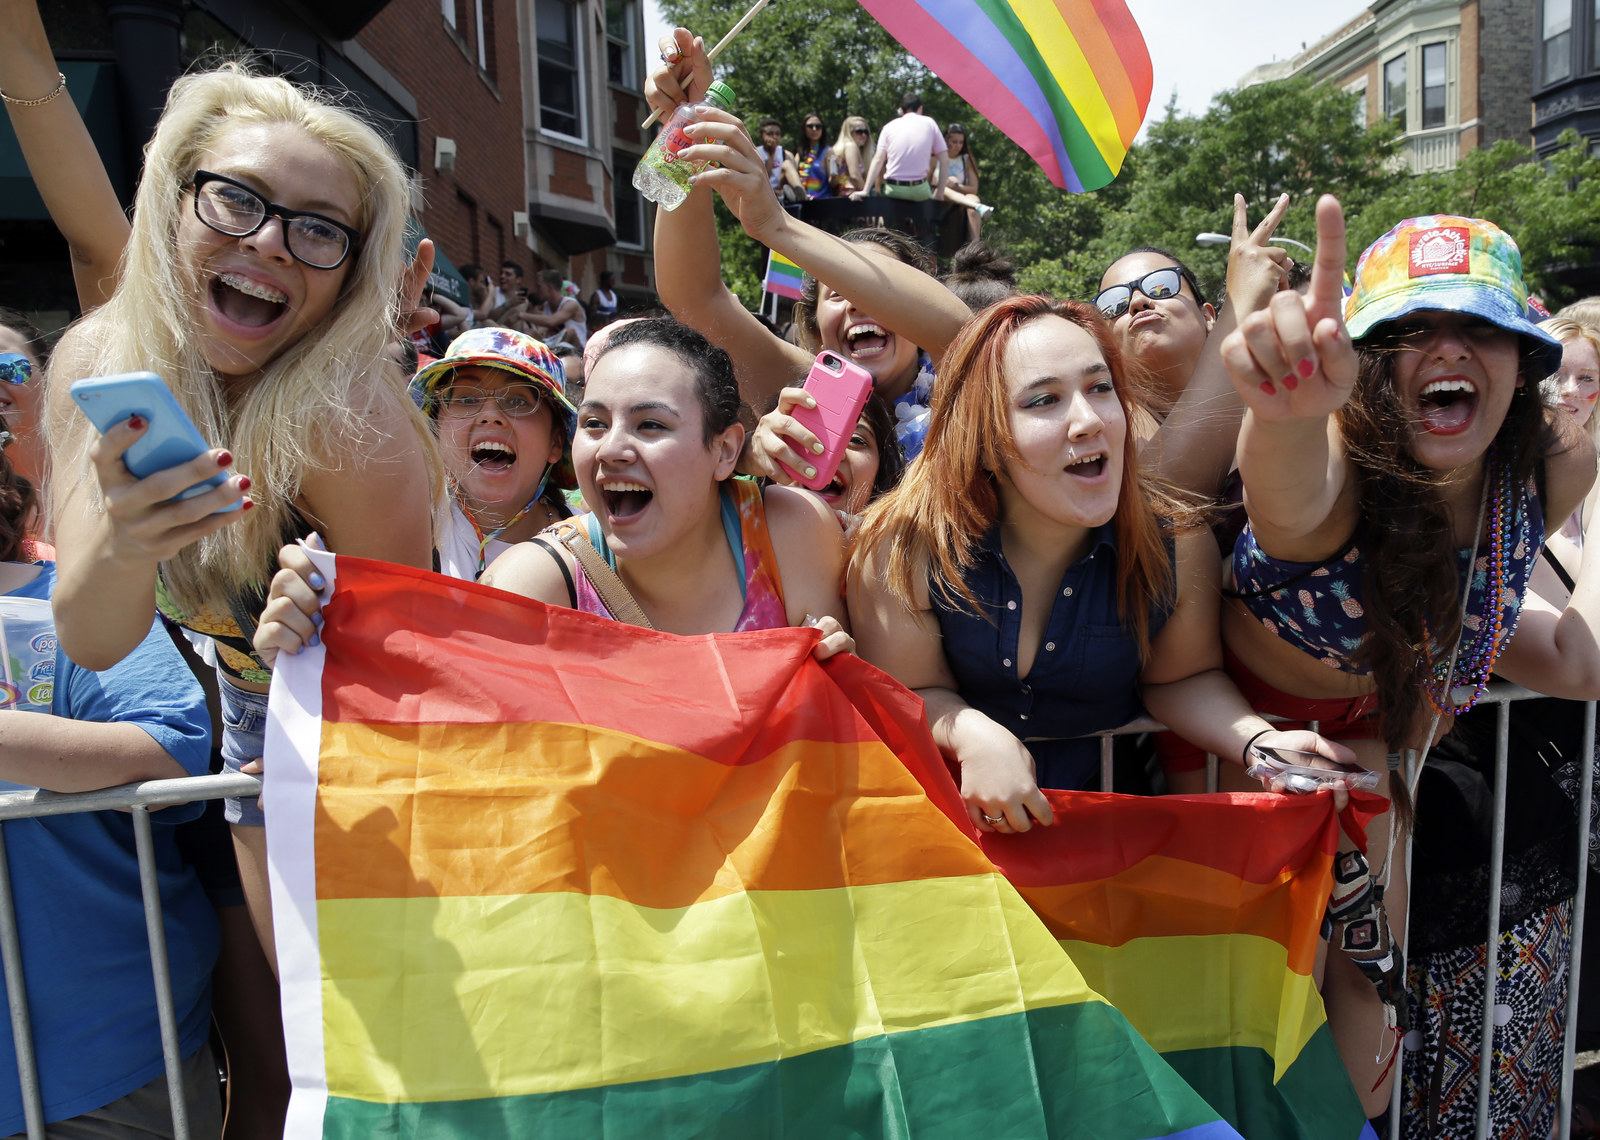 Full Federal Appeals Court To Reconsider Case On Gay Protections